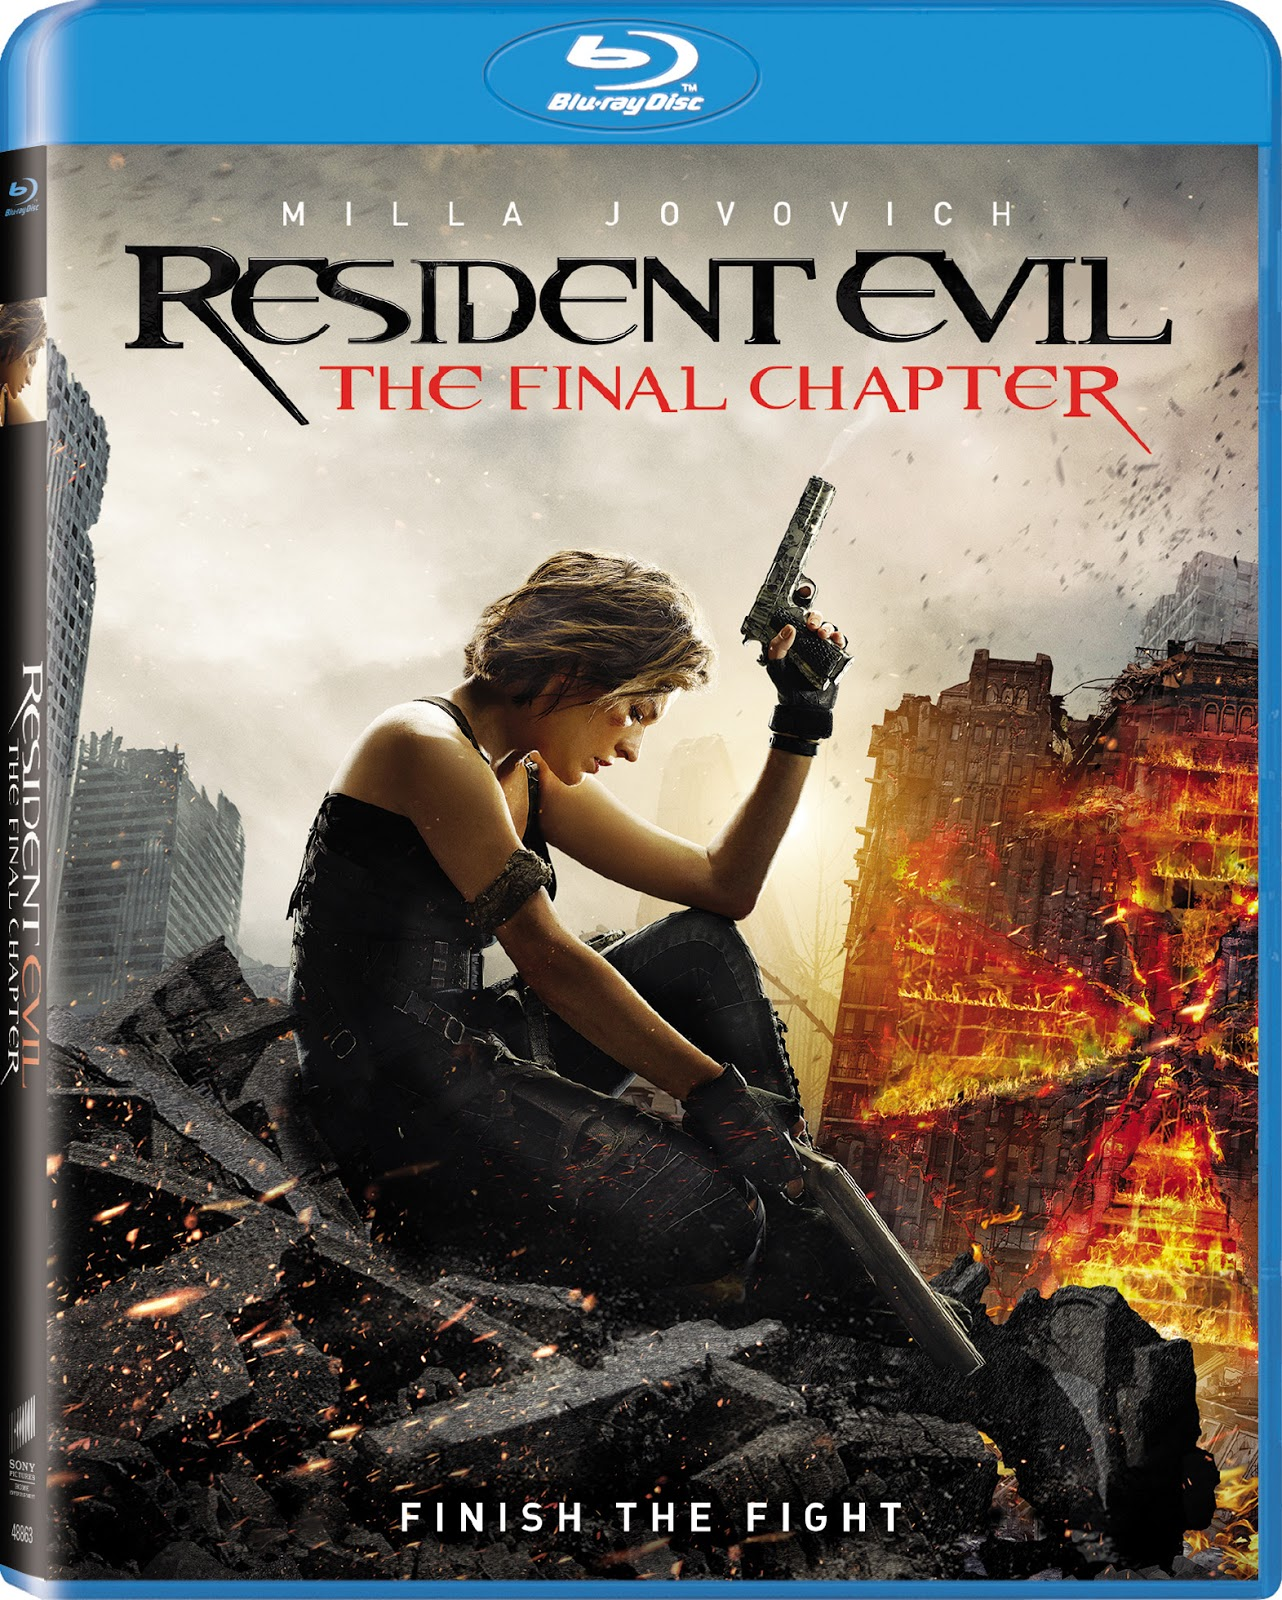 Resident Evil Capitulo Final BD25 Descargar LATINO